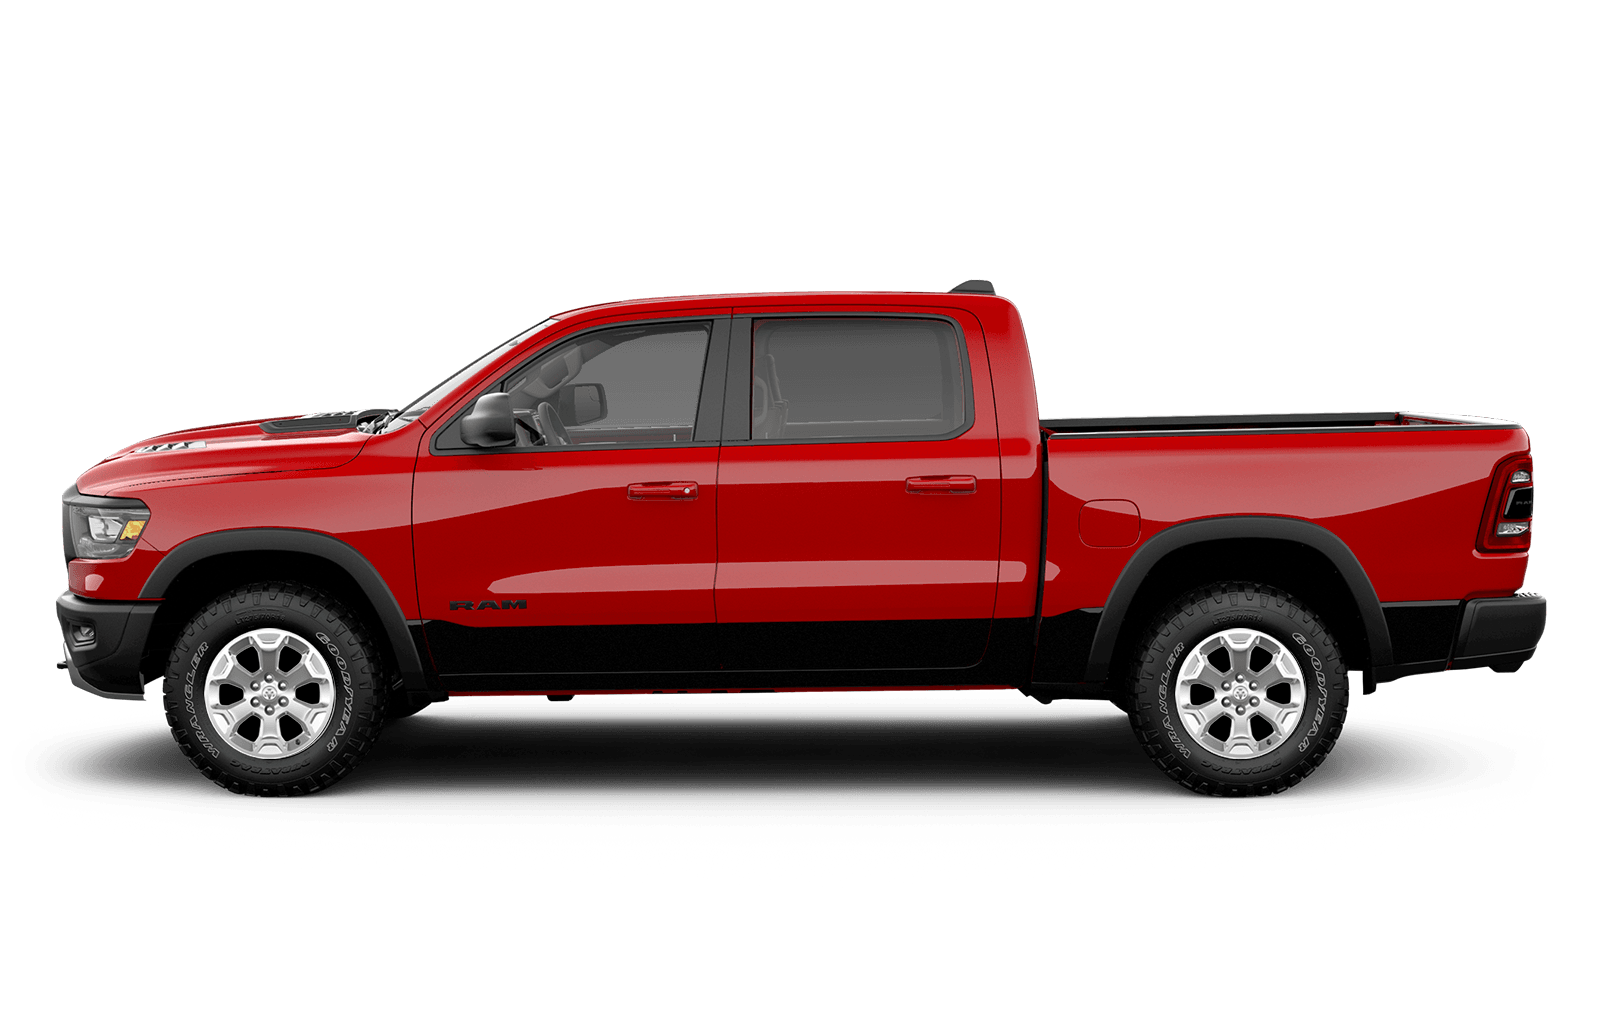 2019 Ram 1500 20inch chrome clad aluminum wheels on red truck available on Big Horn